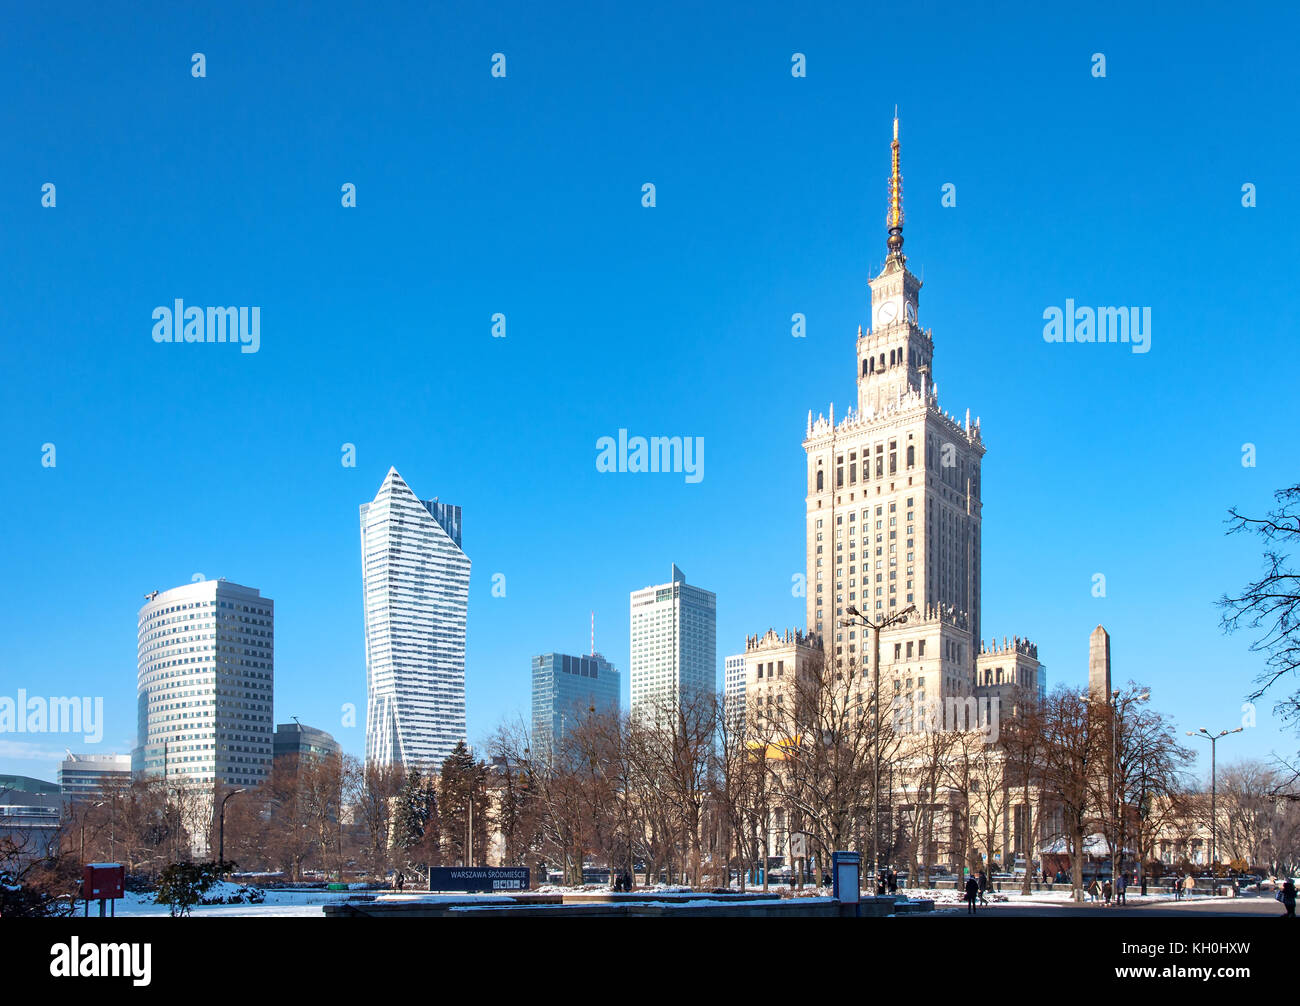 Warsaw city center with Palace of Culture and Science (PKiN), a landmark and symbol of Stalinism and communism, - Stock Image